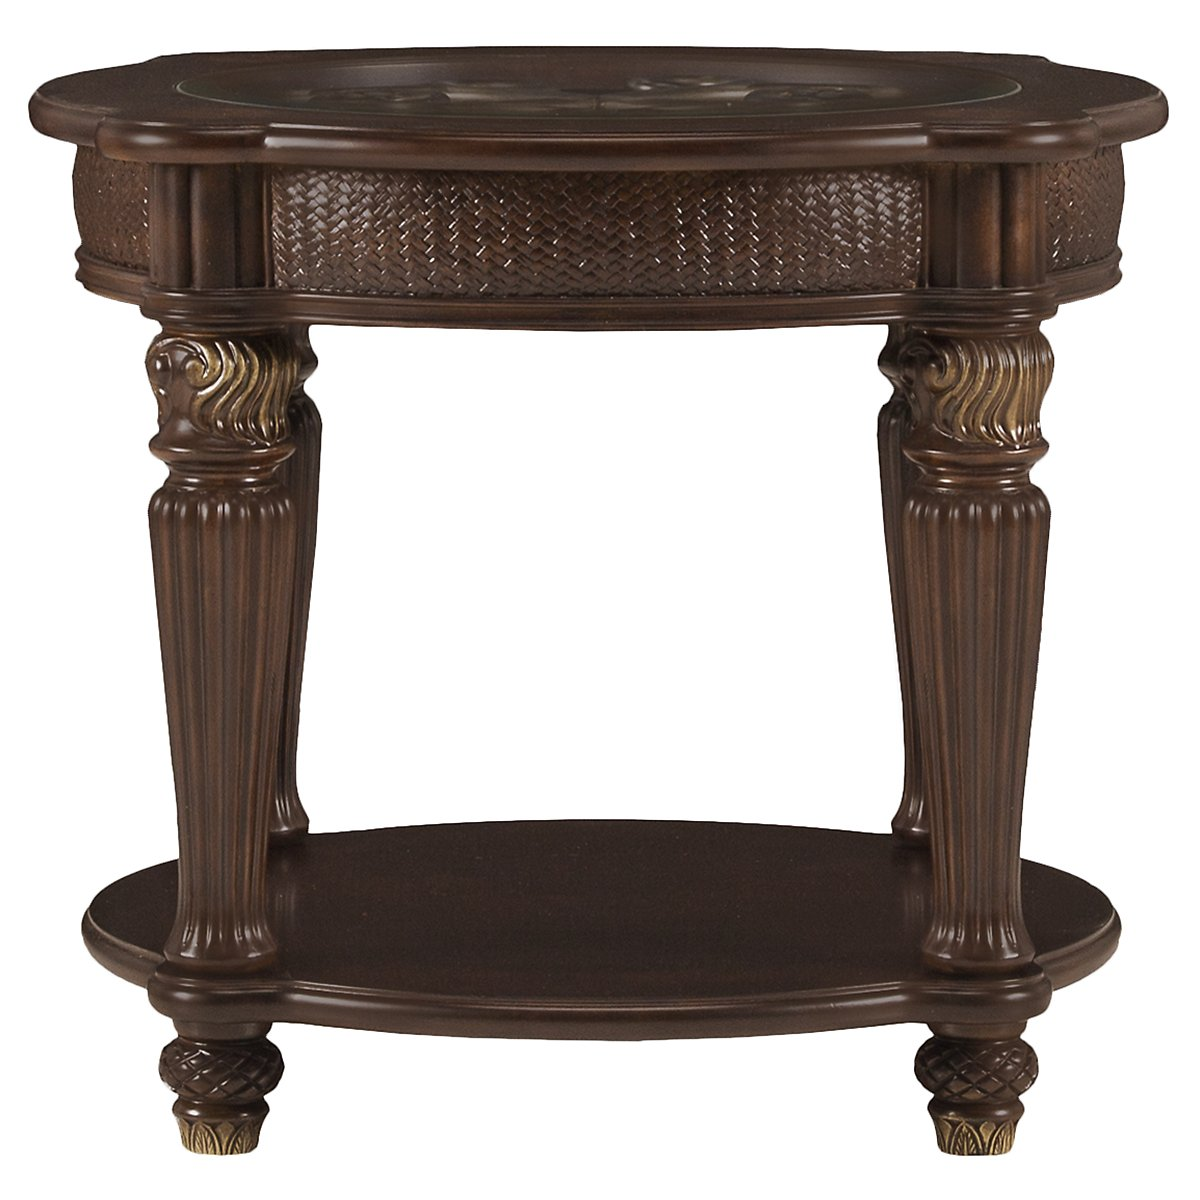 round metal accent table city furniture tradewinds dark tone end wood and acrylic small pier imports coupon off total entire purchase outdoor patio dining sets clearance inch high